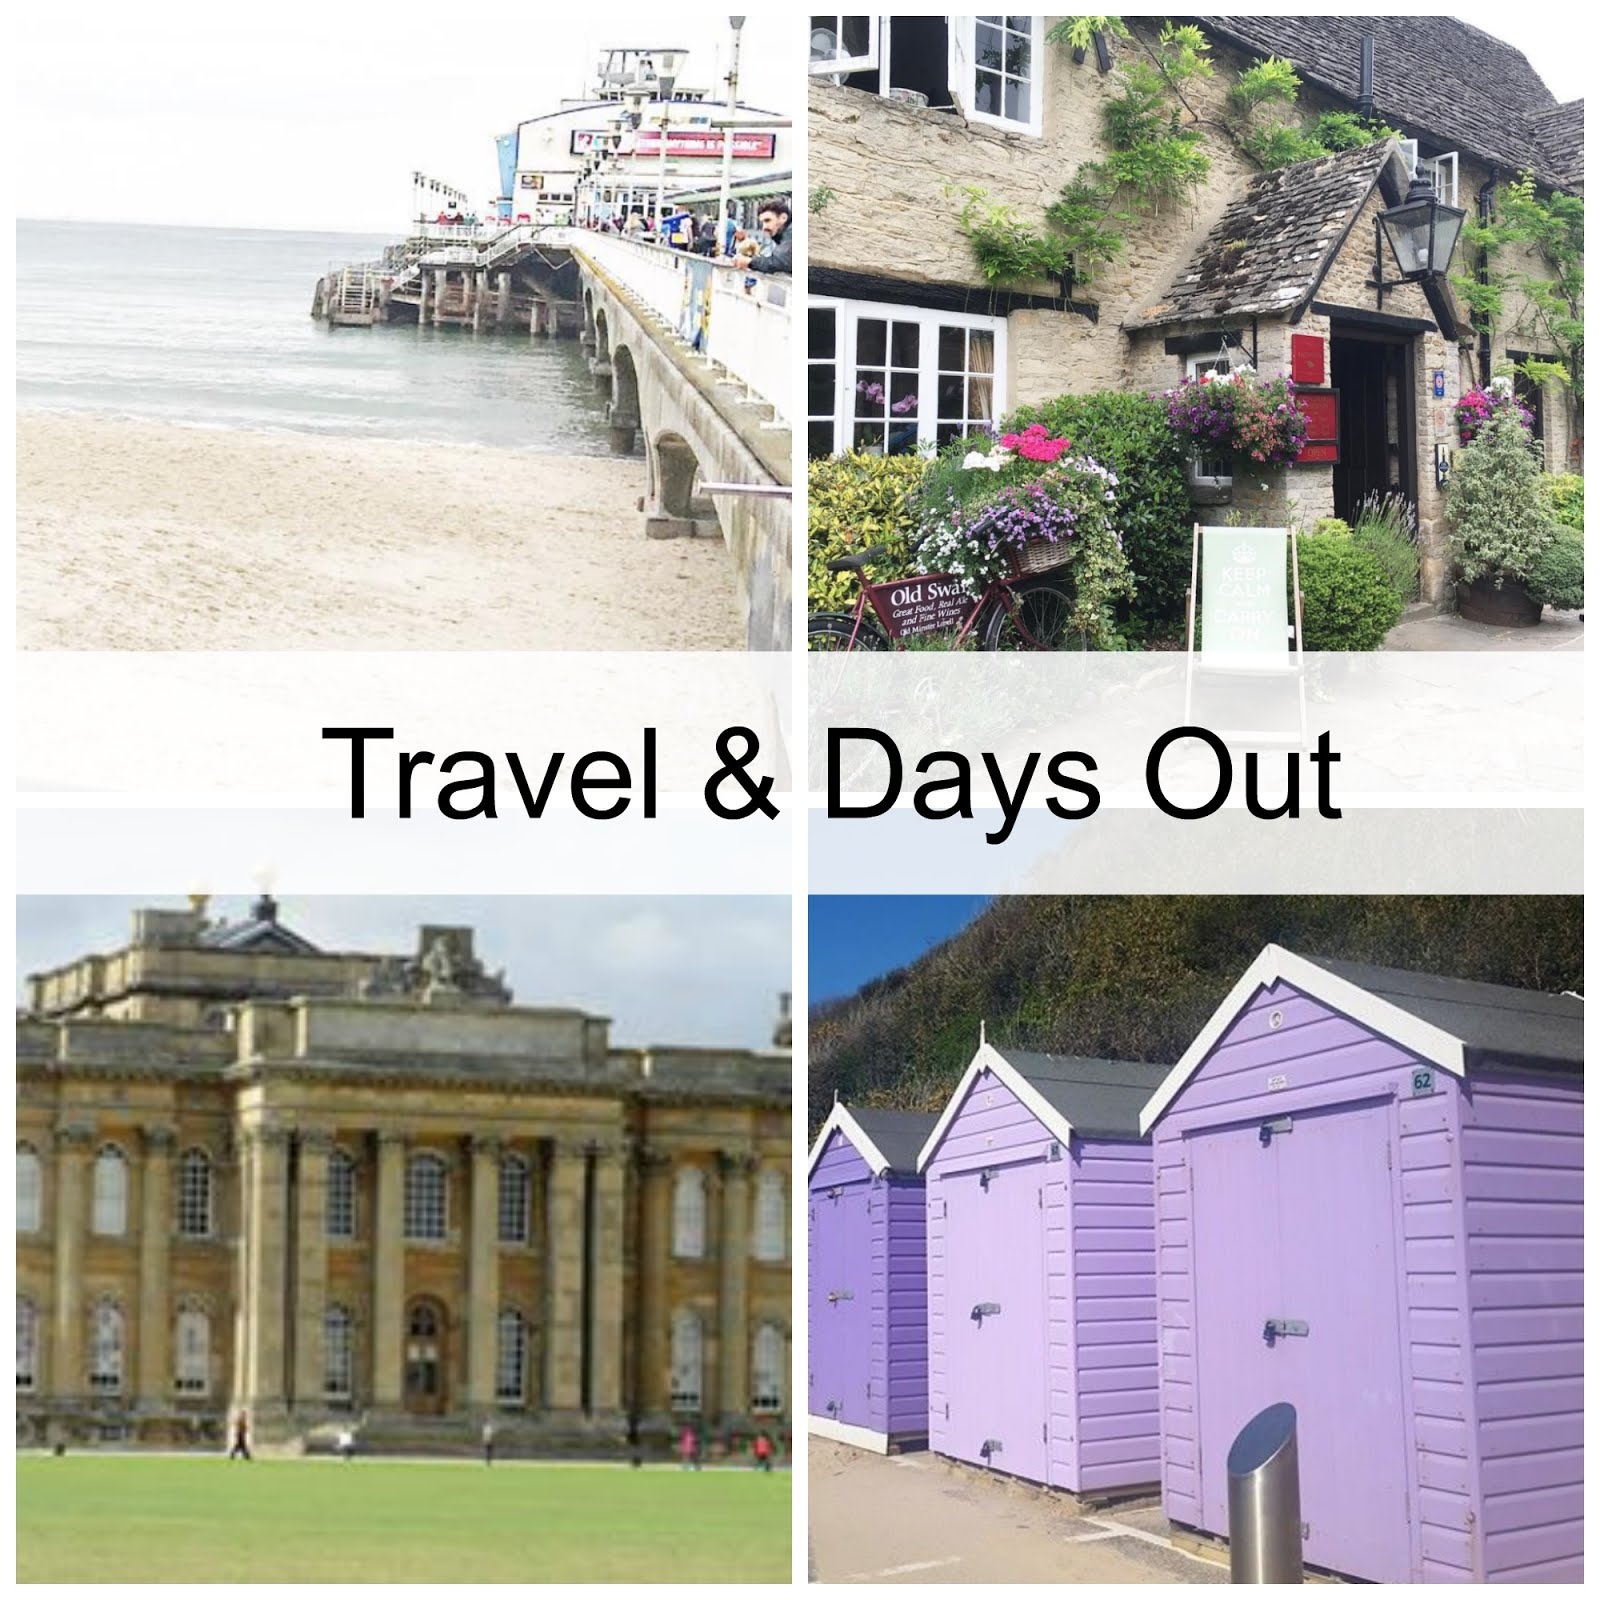 Travel & Days Out